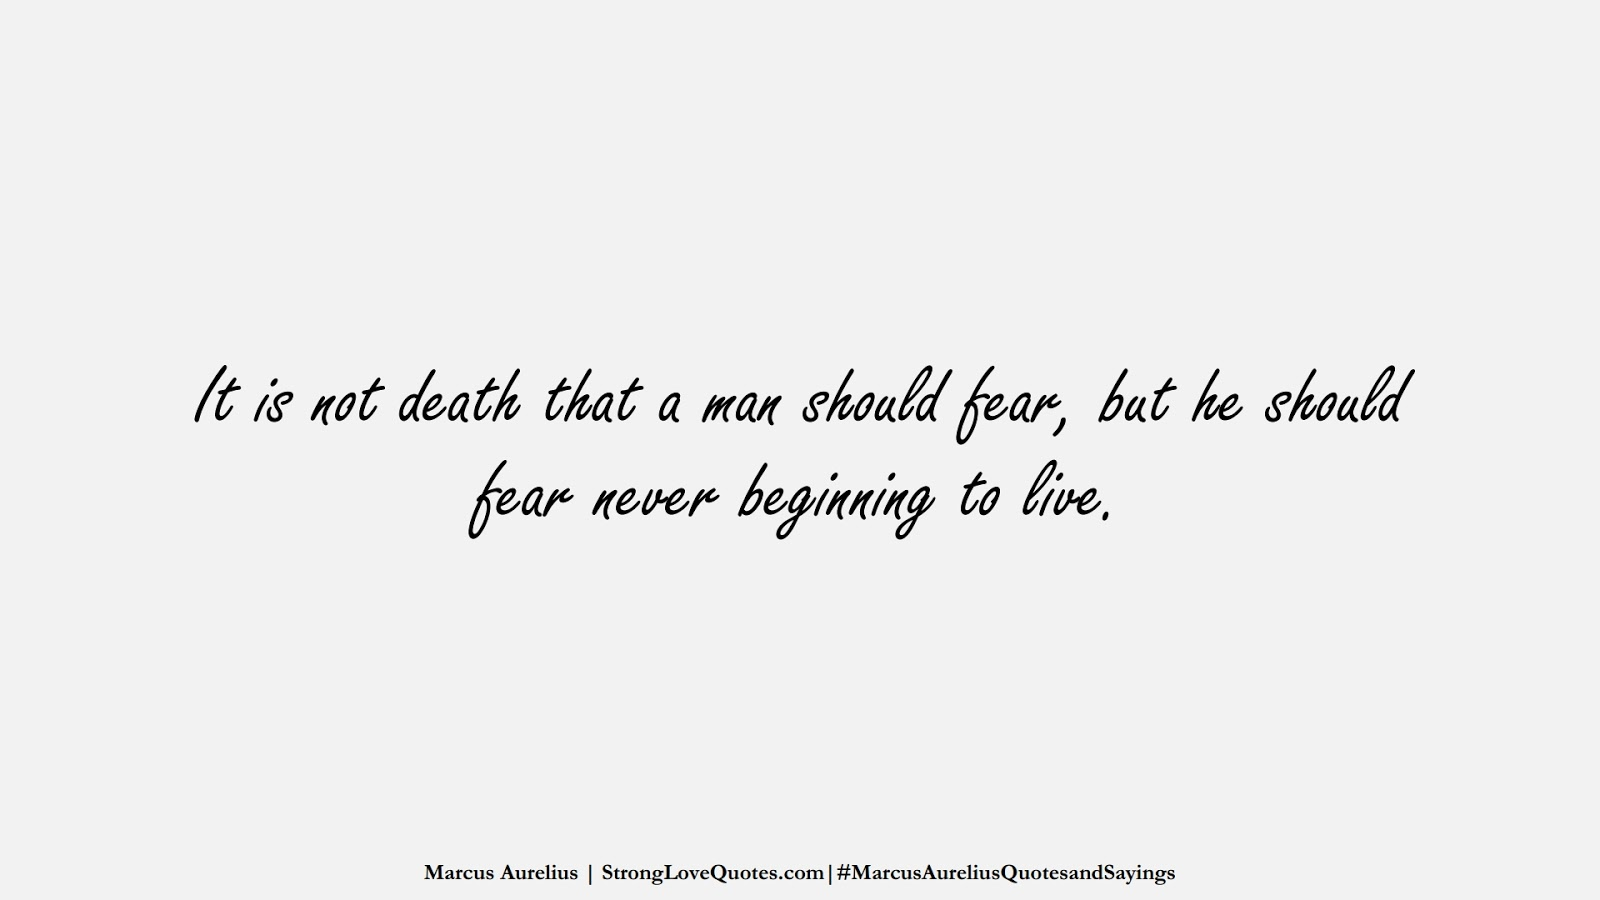 It is not death that a man should fear, but he should fear never beginning to live. (Marcus Aurelius);  #MarcusAureliusQuotesandSayings